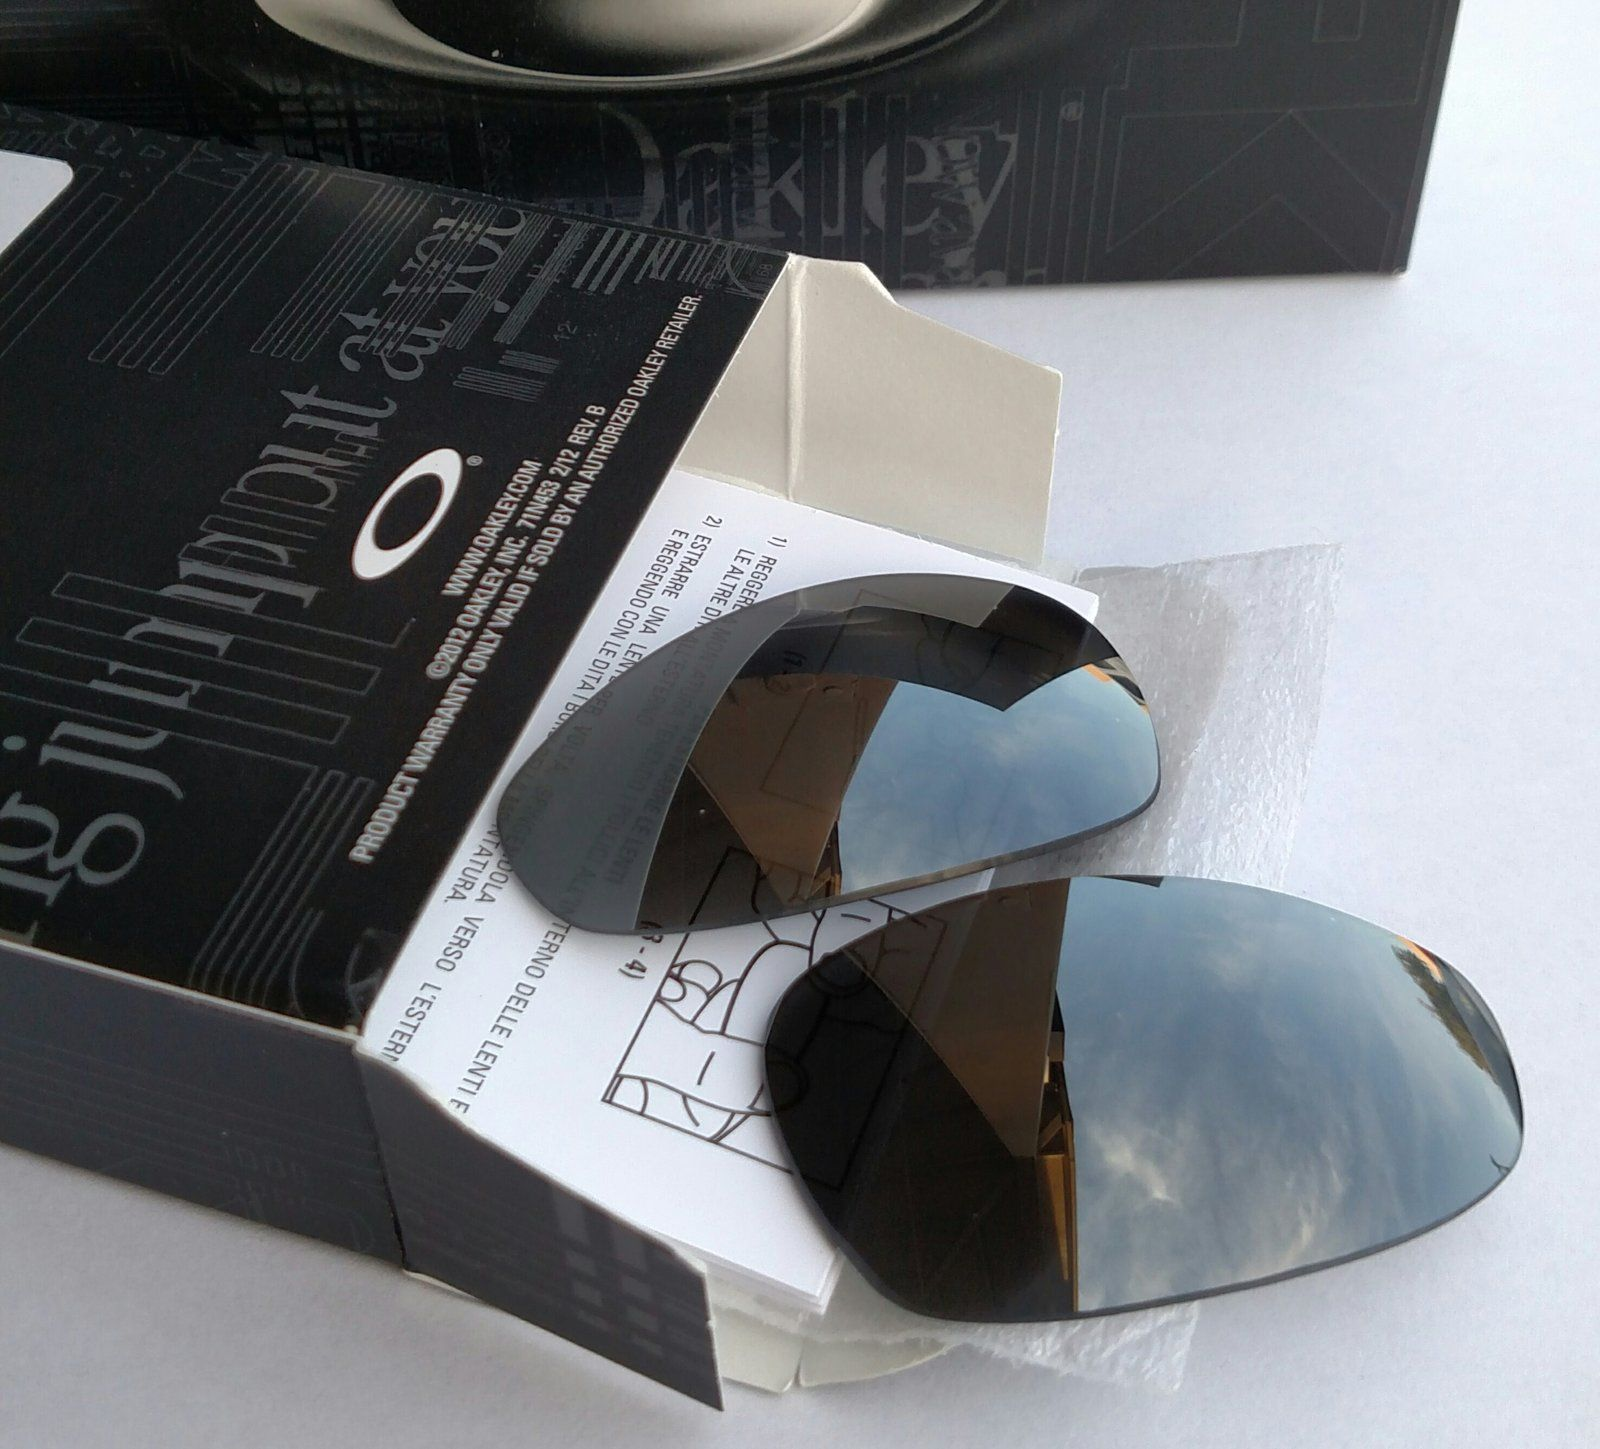 XX & JULIET CUSTOM CUT LENSES FOR X-METALS - IMG_20161110_165033.jpg